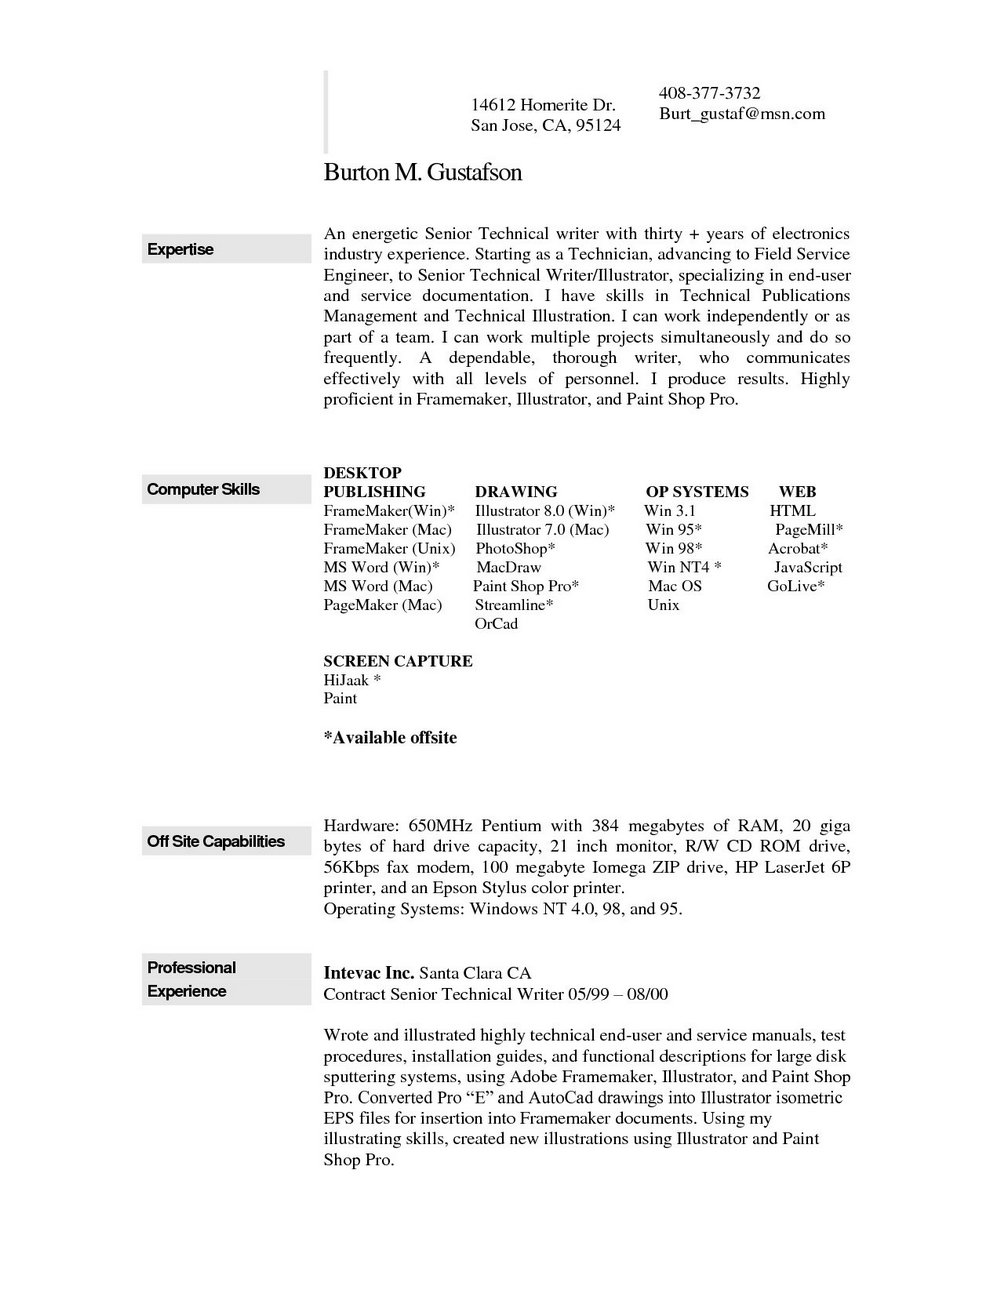 Resume Maker Professional Deluxe 17 Free Download